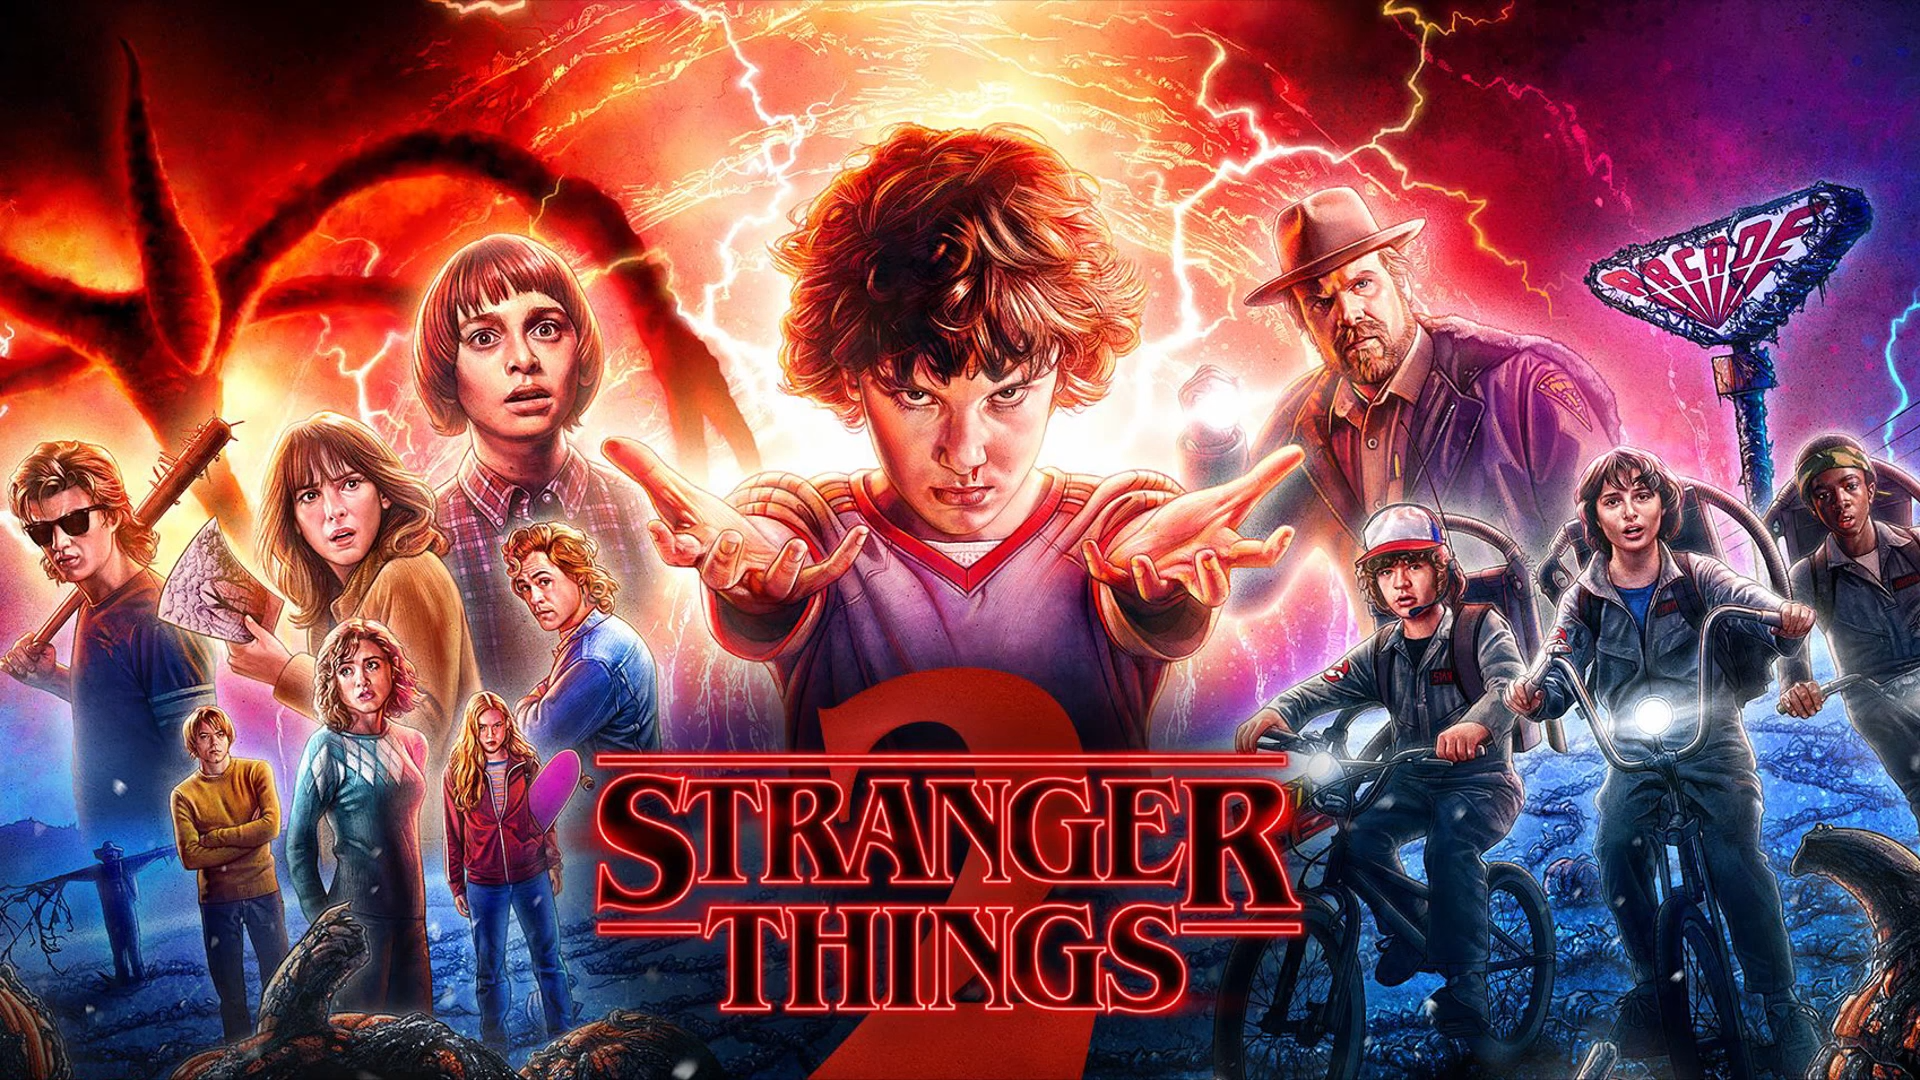 Stranger things 2 fondo de pantalla hd fondo de for Fondo de pantalla stranger things